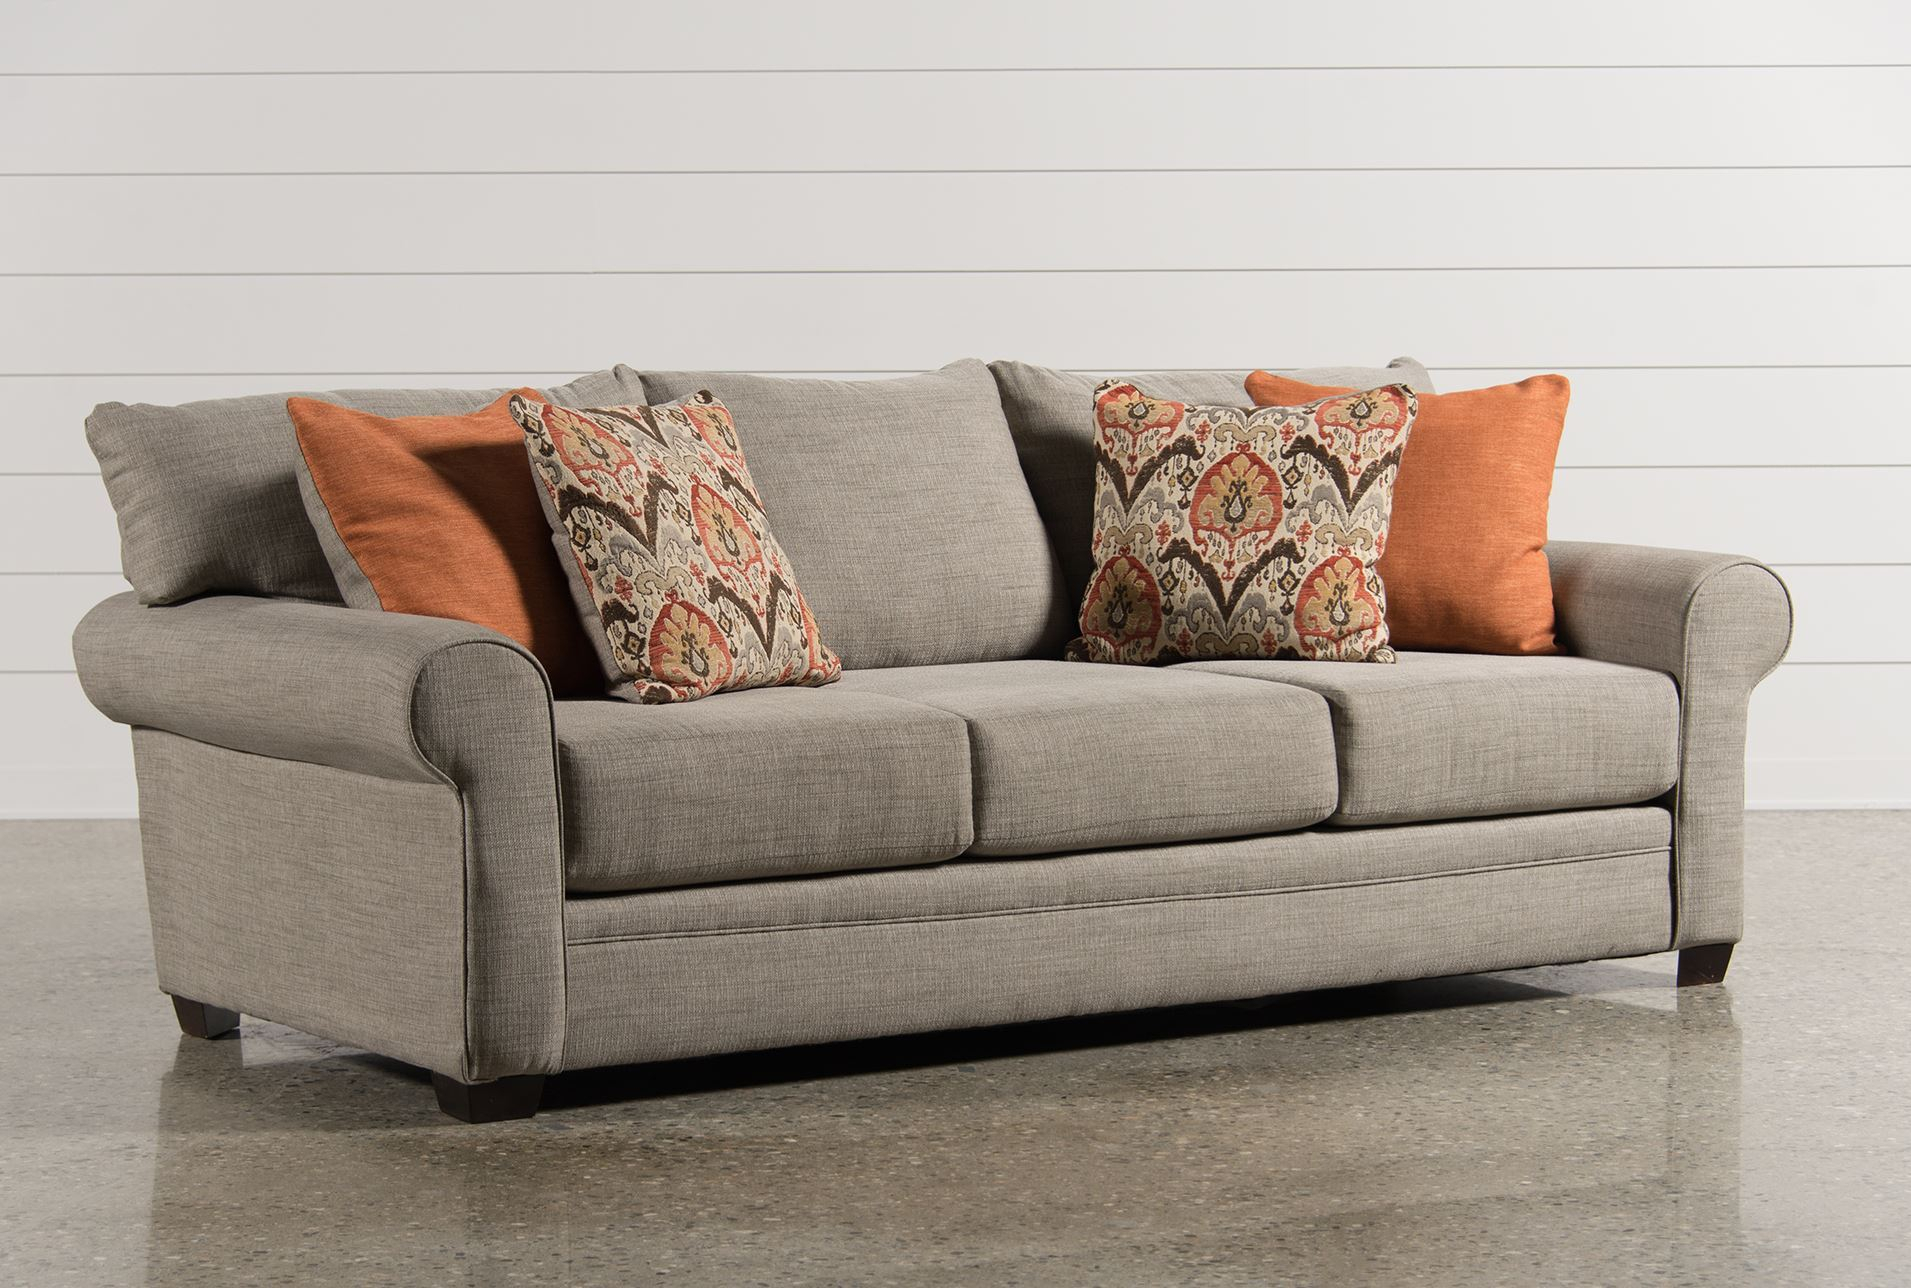 Colour Slipcovers Pillows Covers Couch Placement Glamour Schemes Inside Aquarius Dark Grey Sofa Chairs (Image 13 of 20)